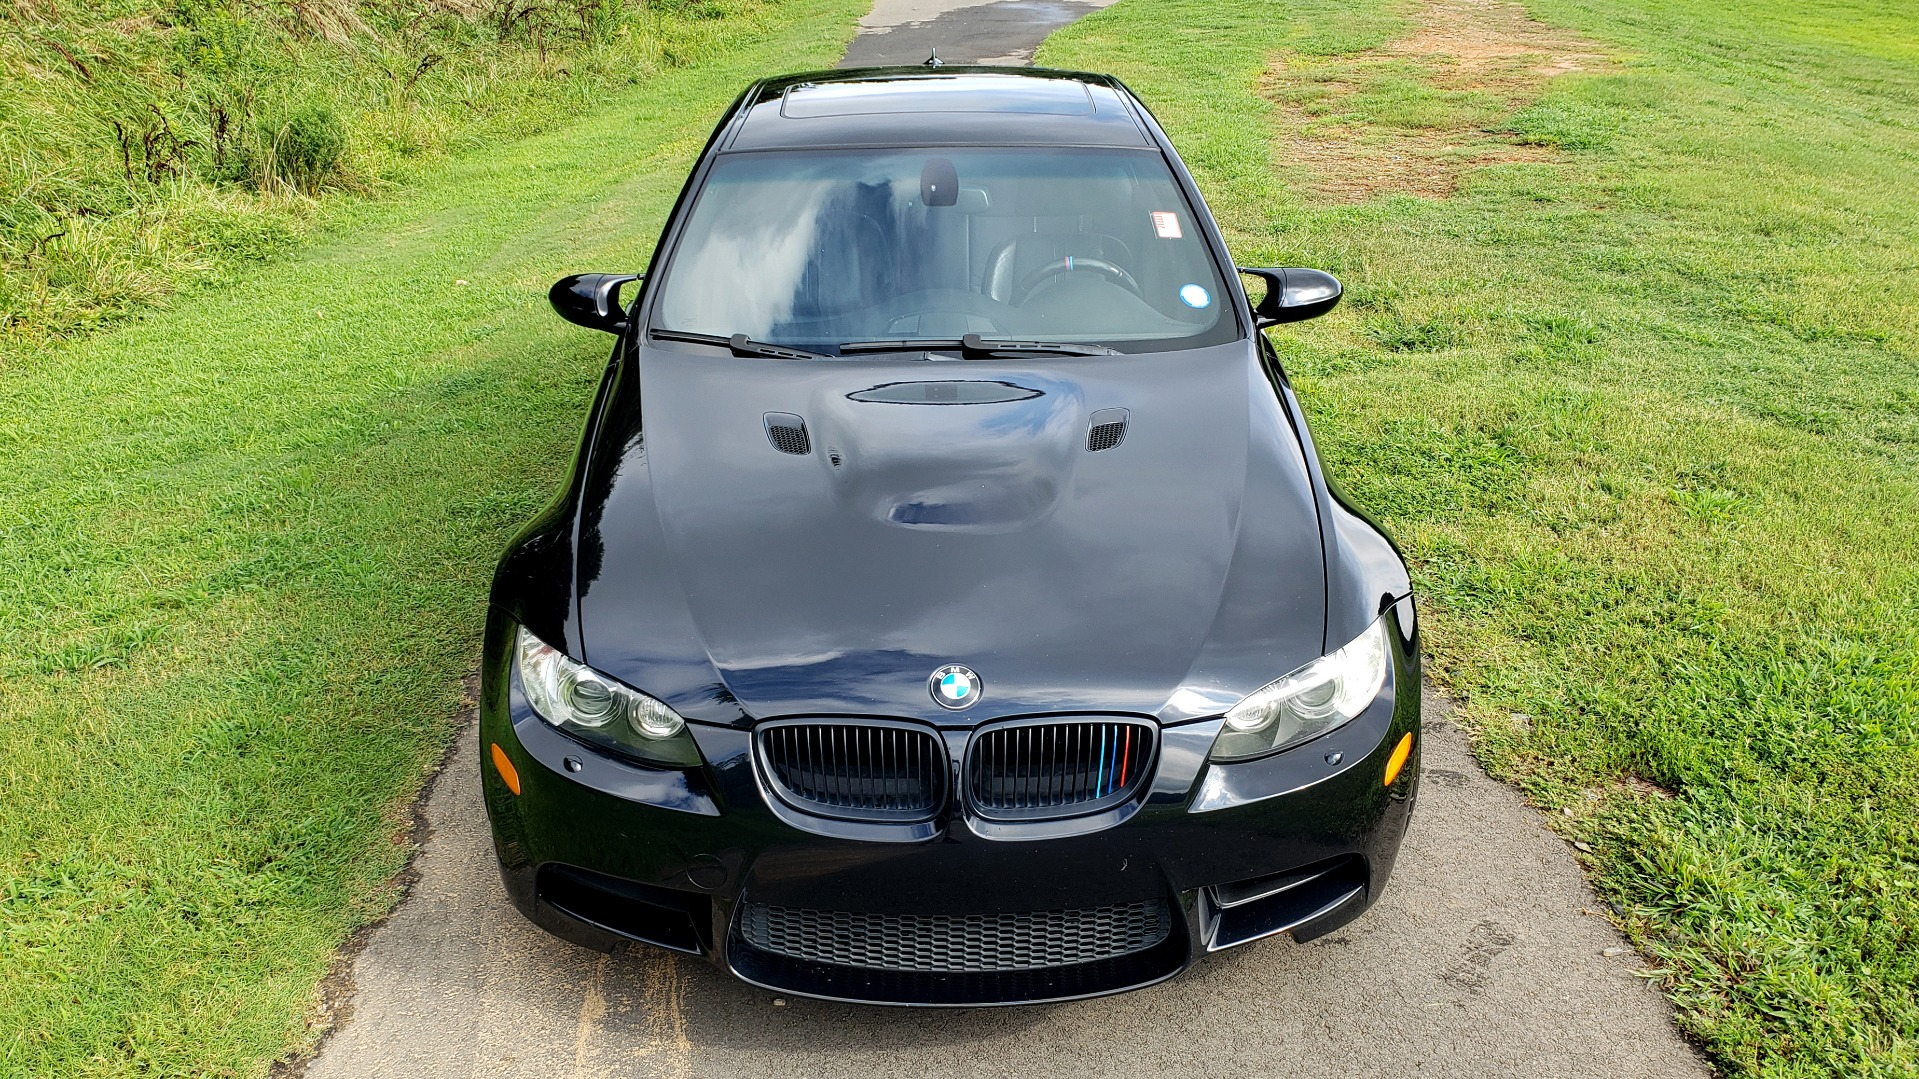 Used 2008 BMW 3 SERIES M3 PREMIUM / TECH / PDC / SUNROOF / 4.0L V8 / 6-SPD MANUAL for sale Sold at Formula Imports in Charlotte NC 28227 14